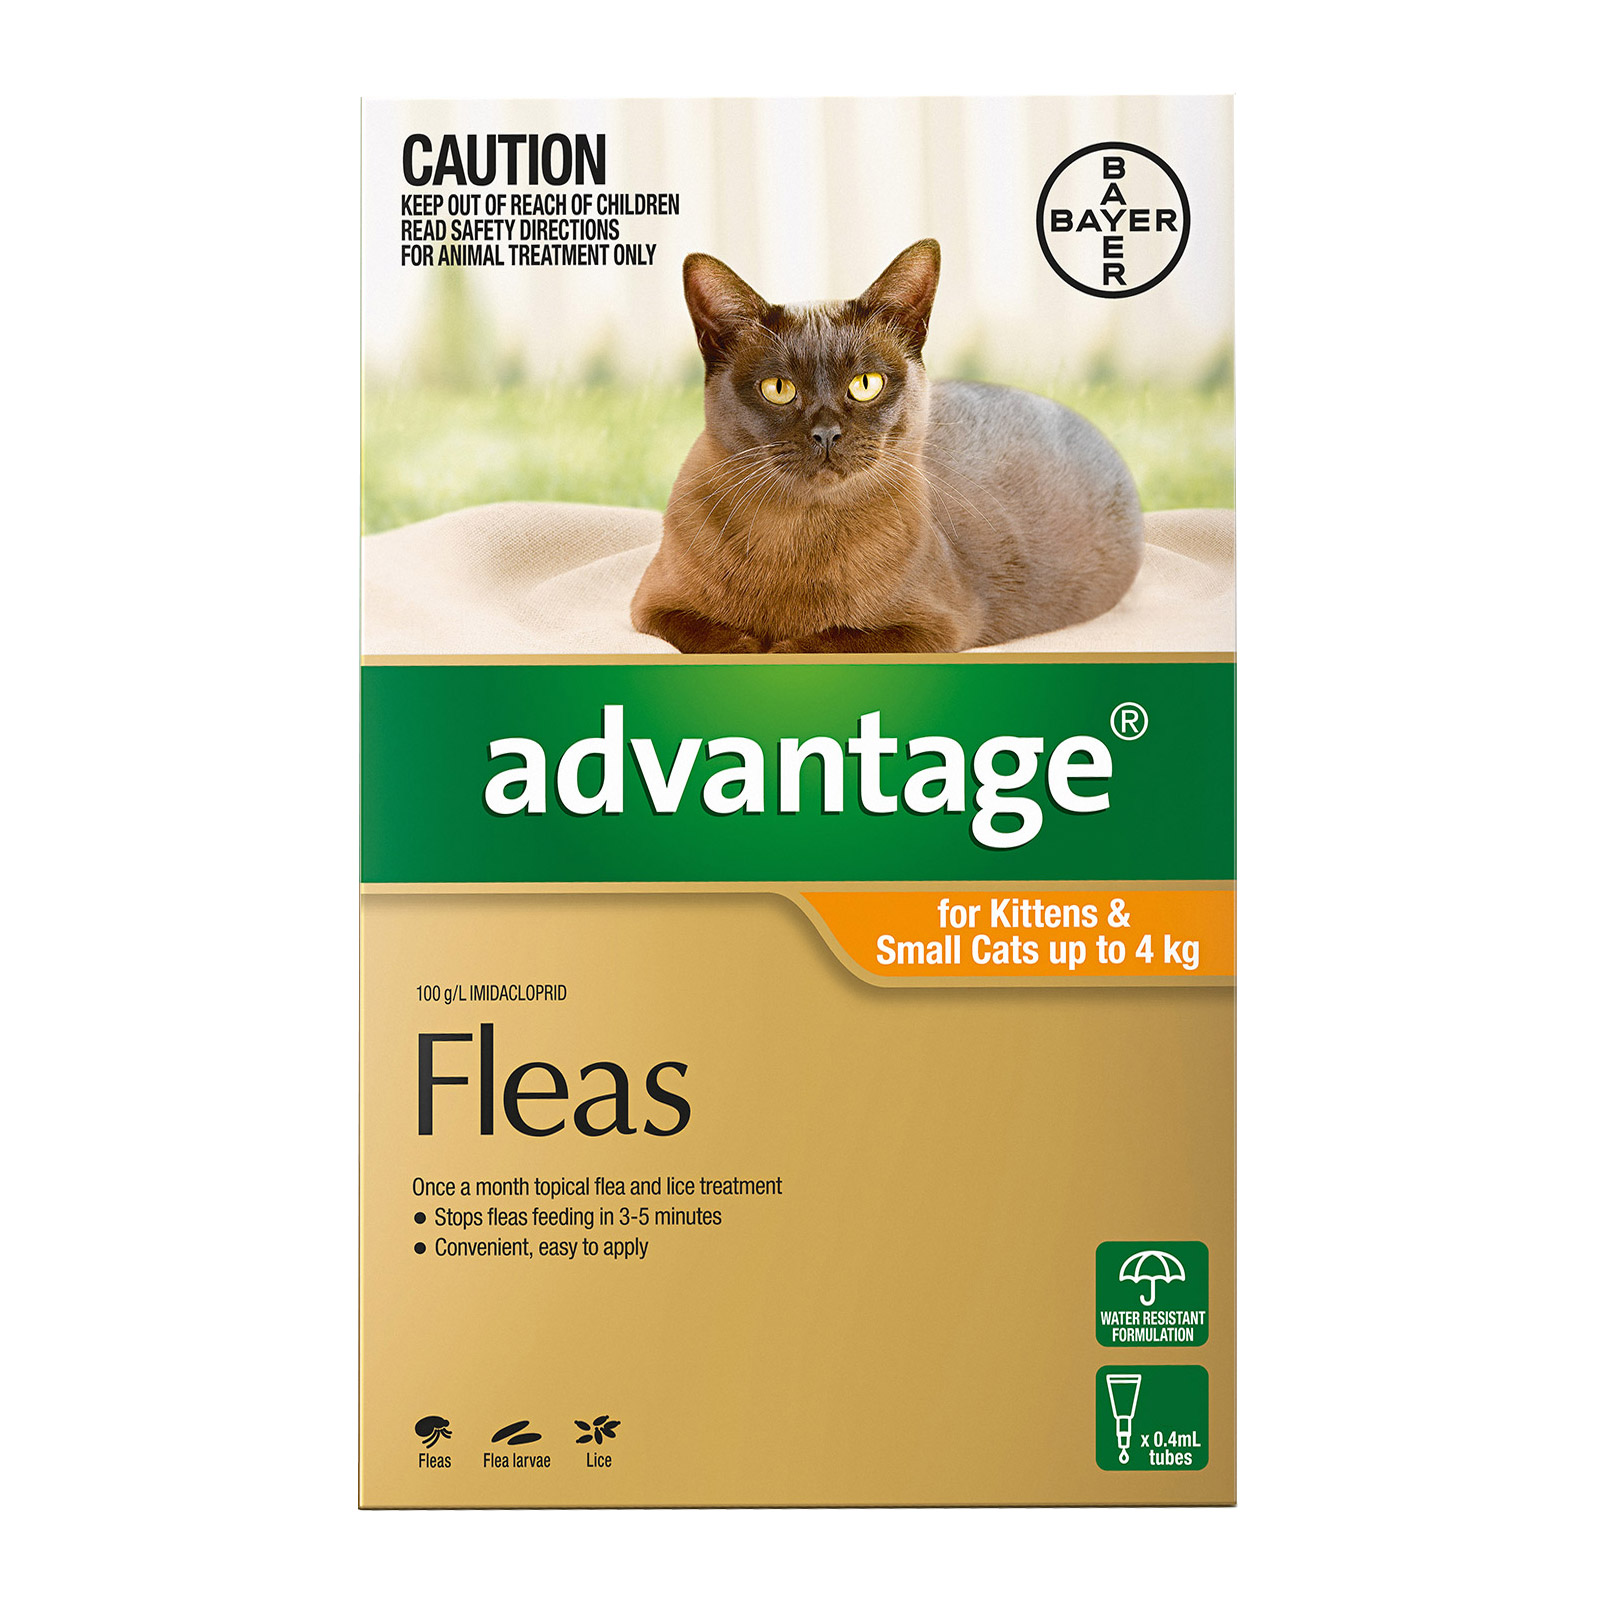 advantage-for-kittens-small-cats-up-to-4kg-1.jpg